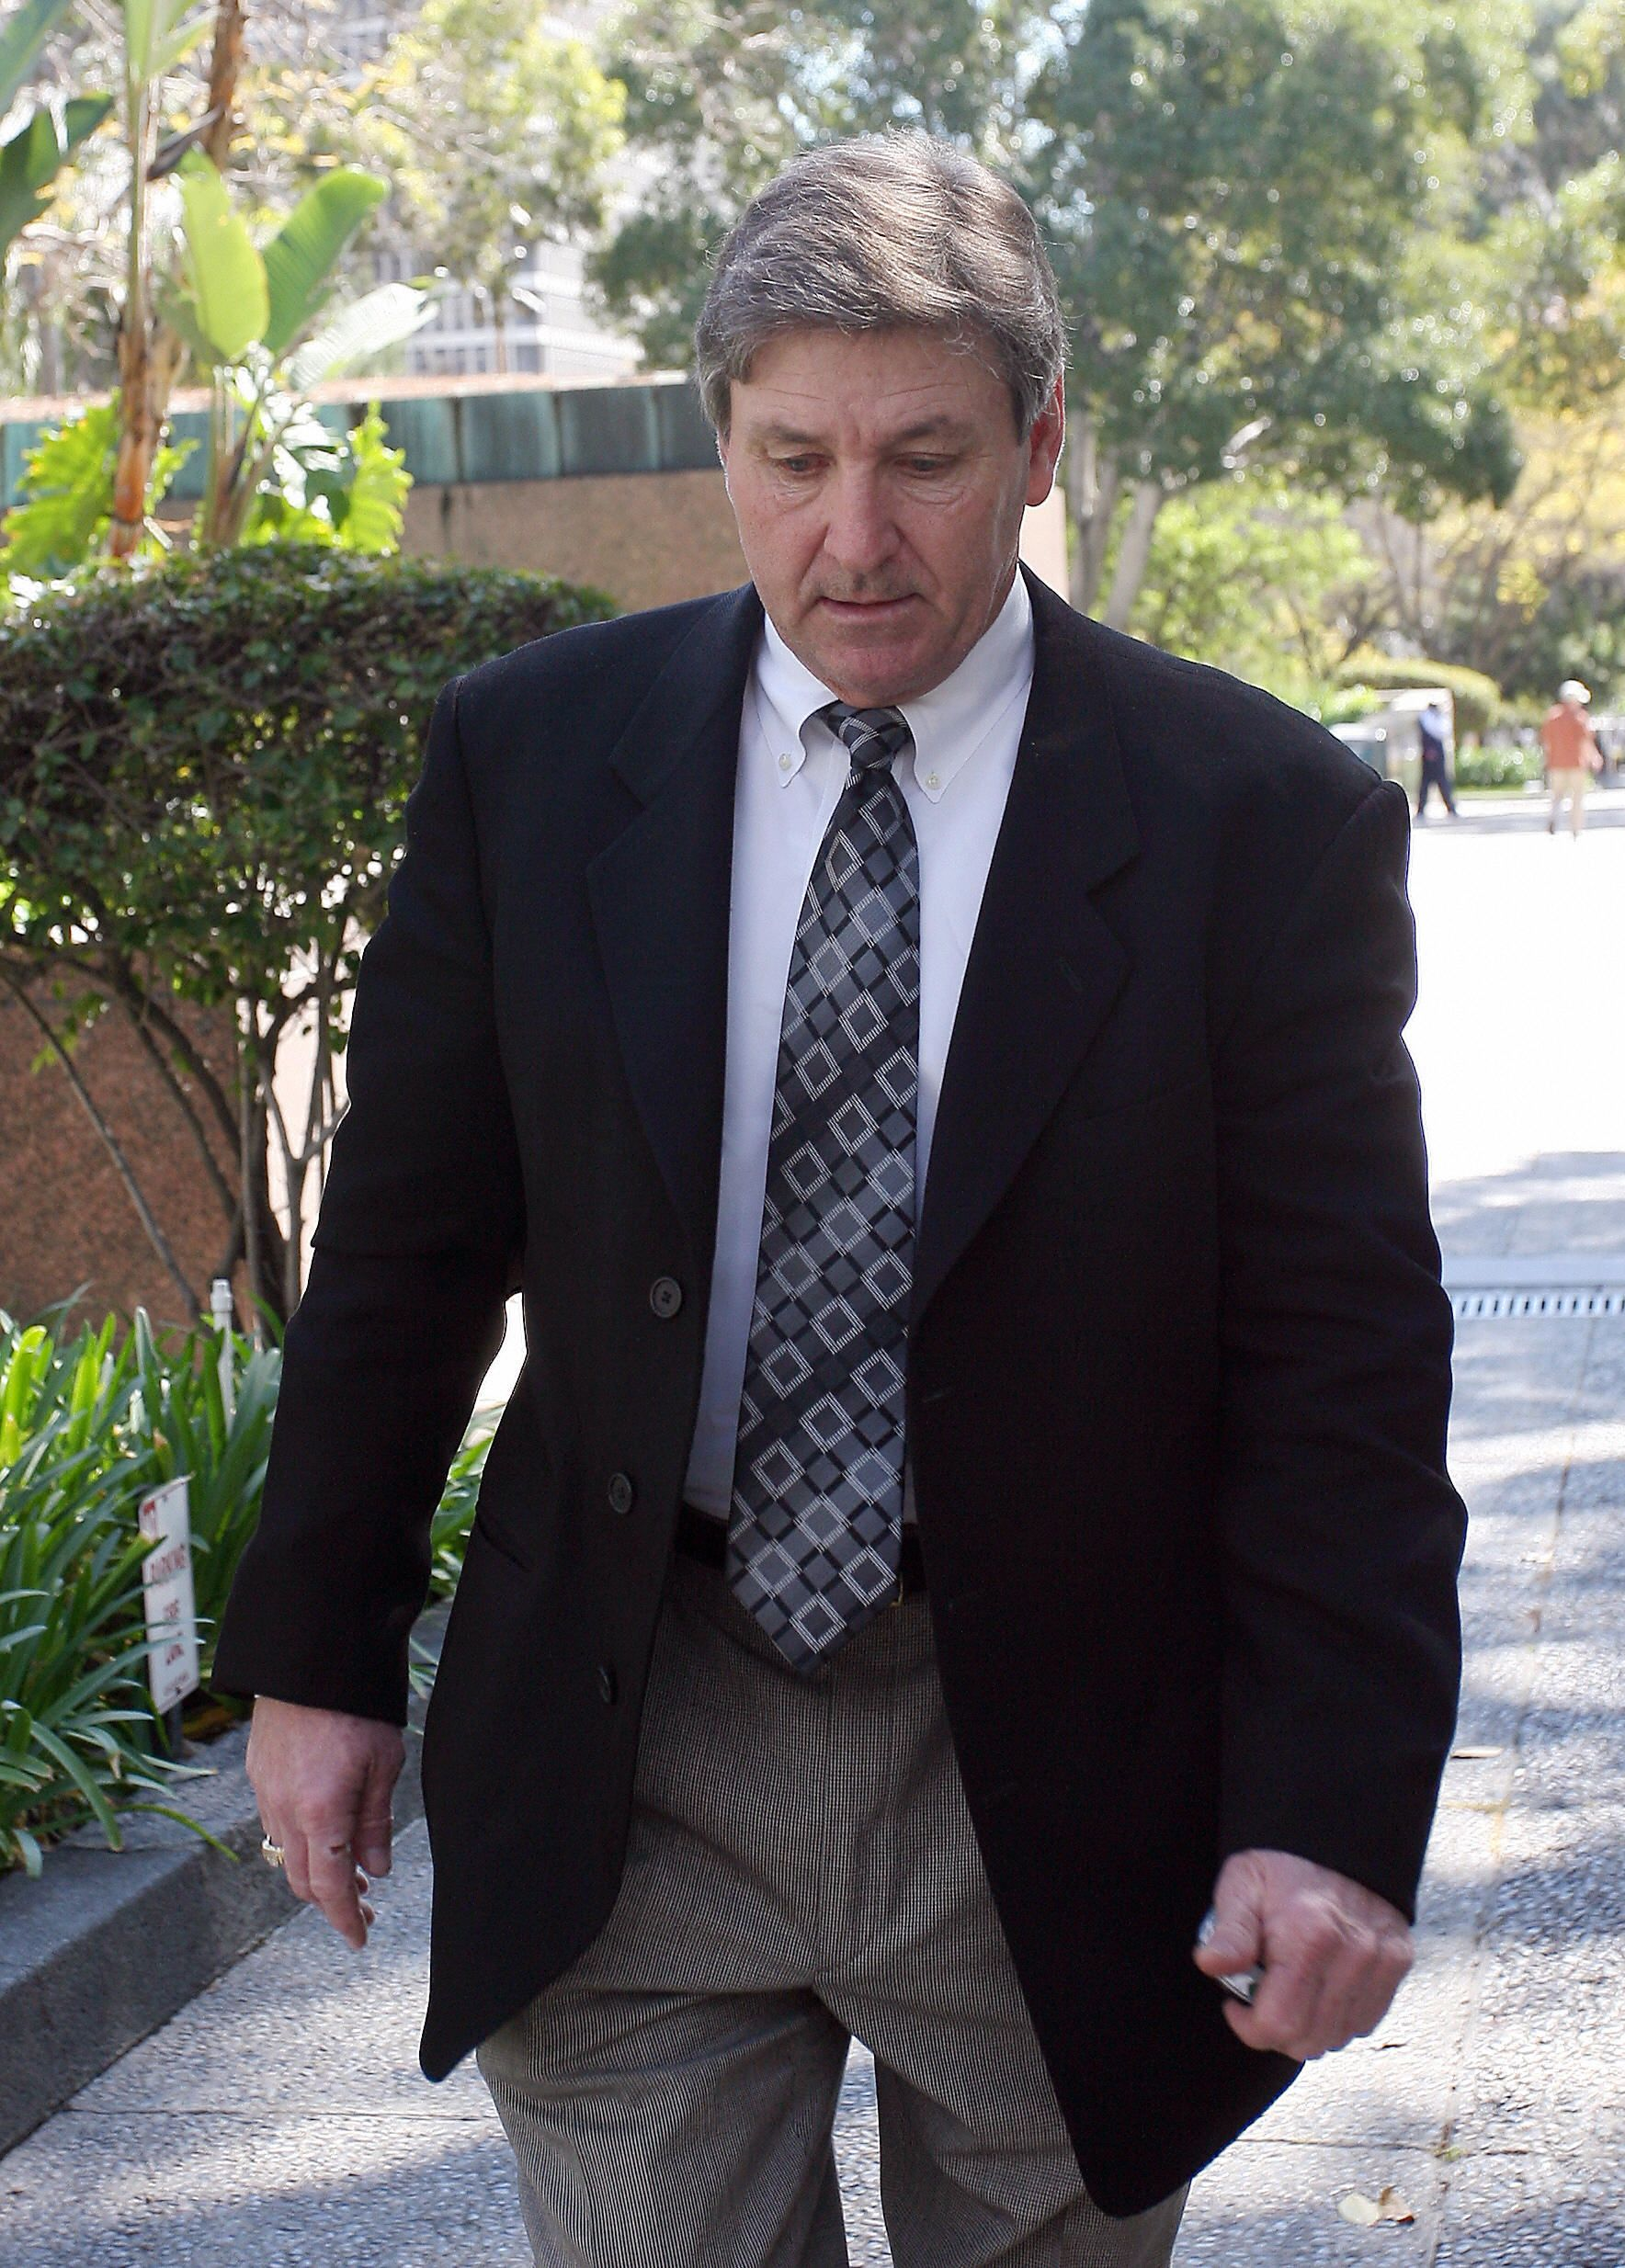 Britney Spears' father, Jamie Spears, at the Los Angeles County Superior courthouse on March 10, 2008   Photo: Getty Images